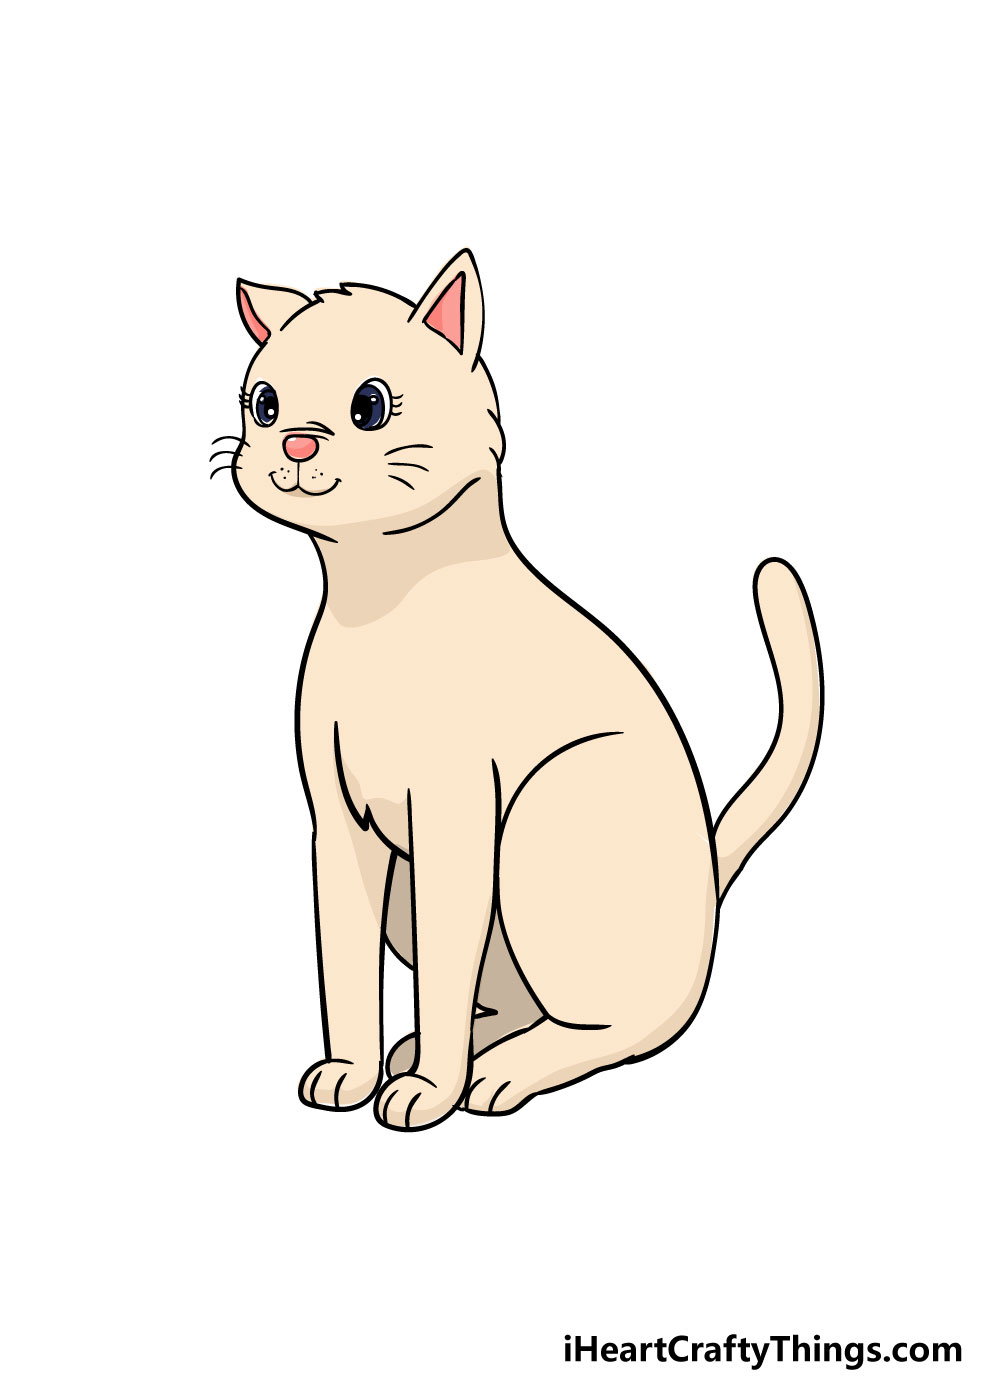 cat drawing step 9